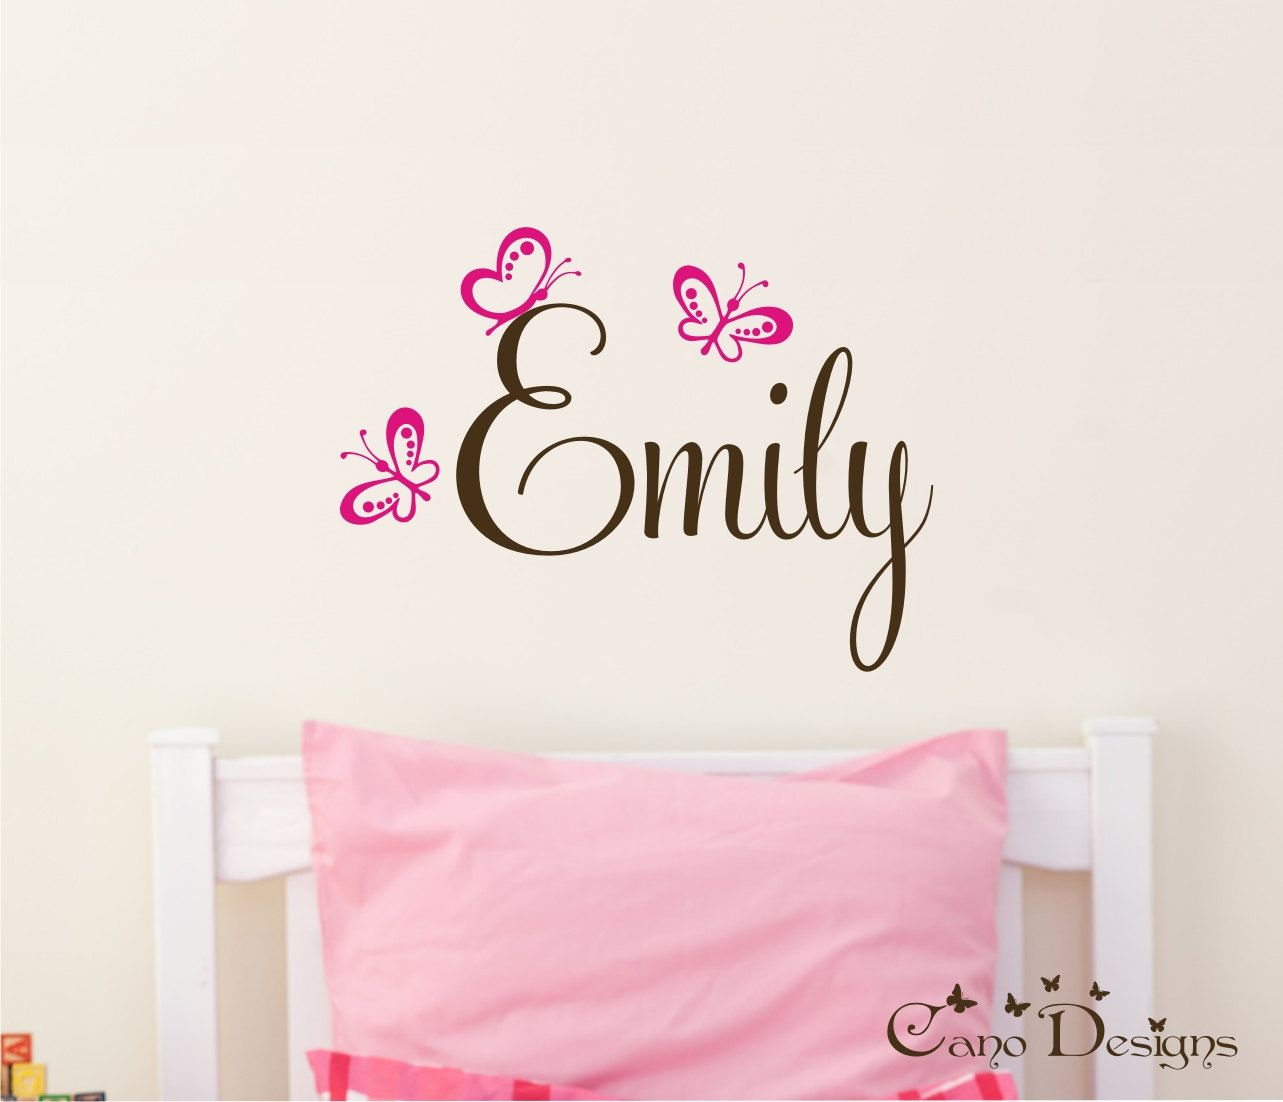 Tree wall decals large personalized family tree decal vinyl wall decal - Personalized Name With Butterflies Custom Vinyl Wall Decals Stickers Nursery Kids Teens Room Removable Decals Stickers